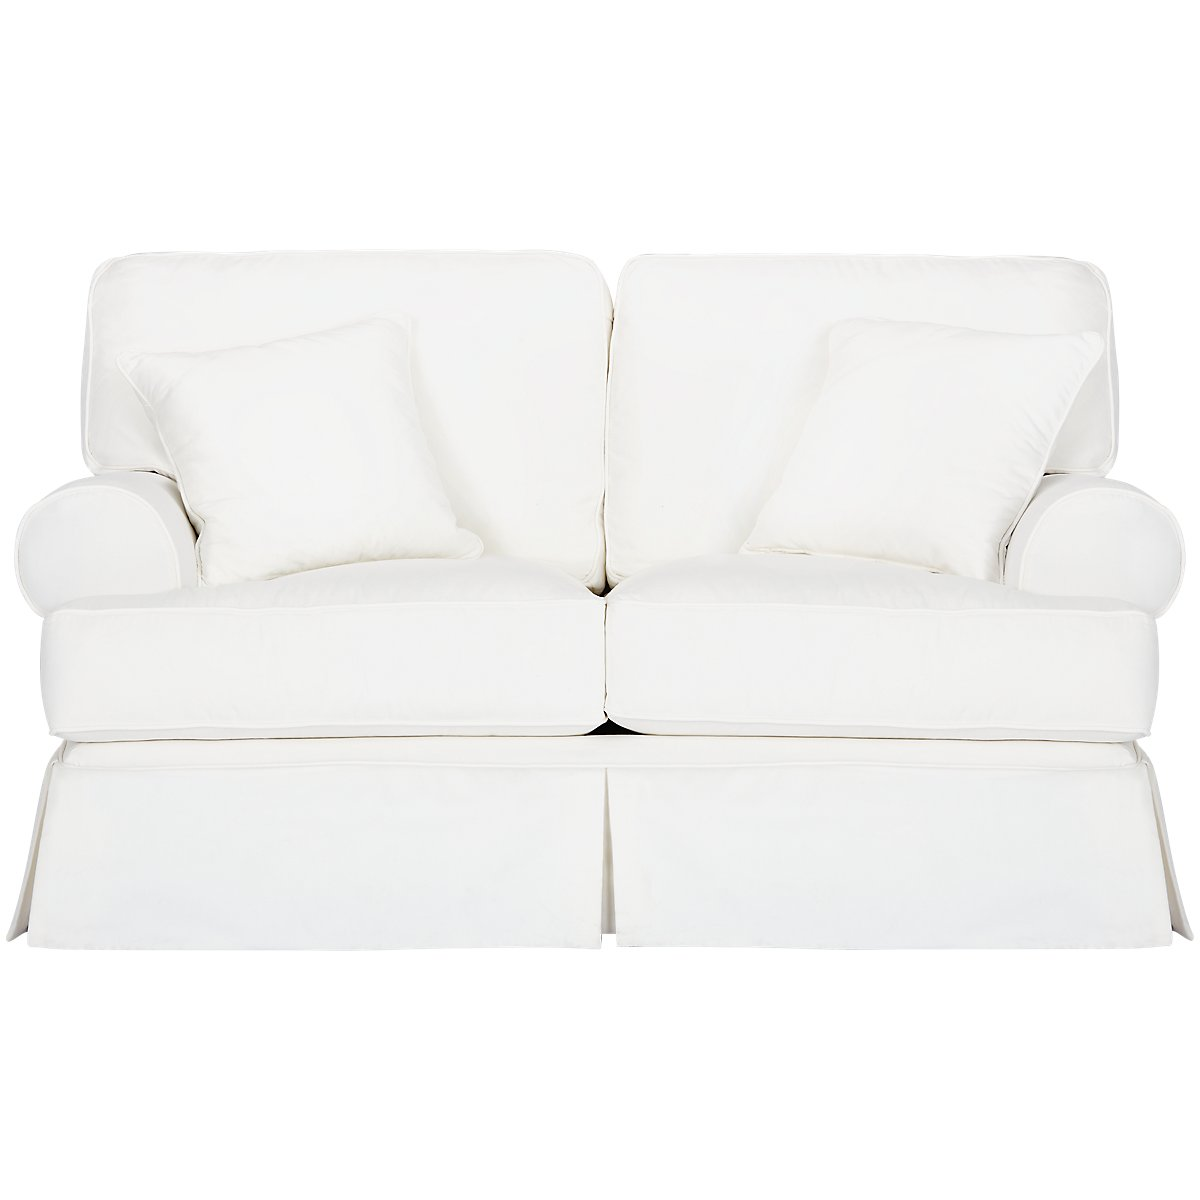 city furniture harris white fabric loveseat - harris white fabric loveseat